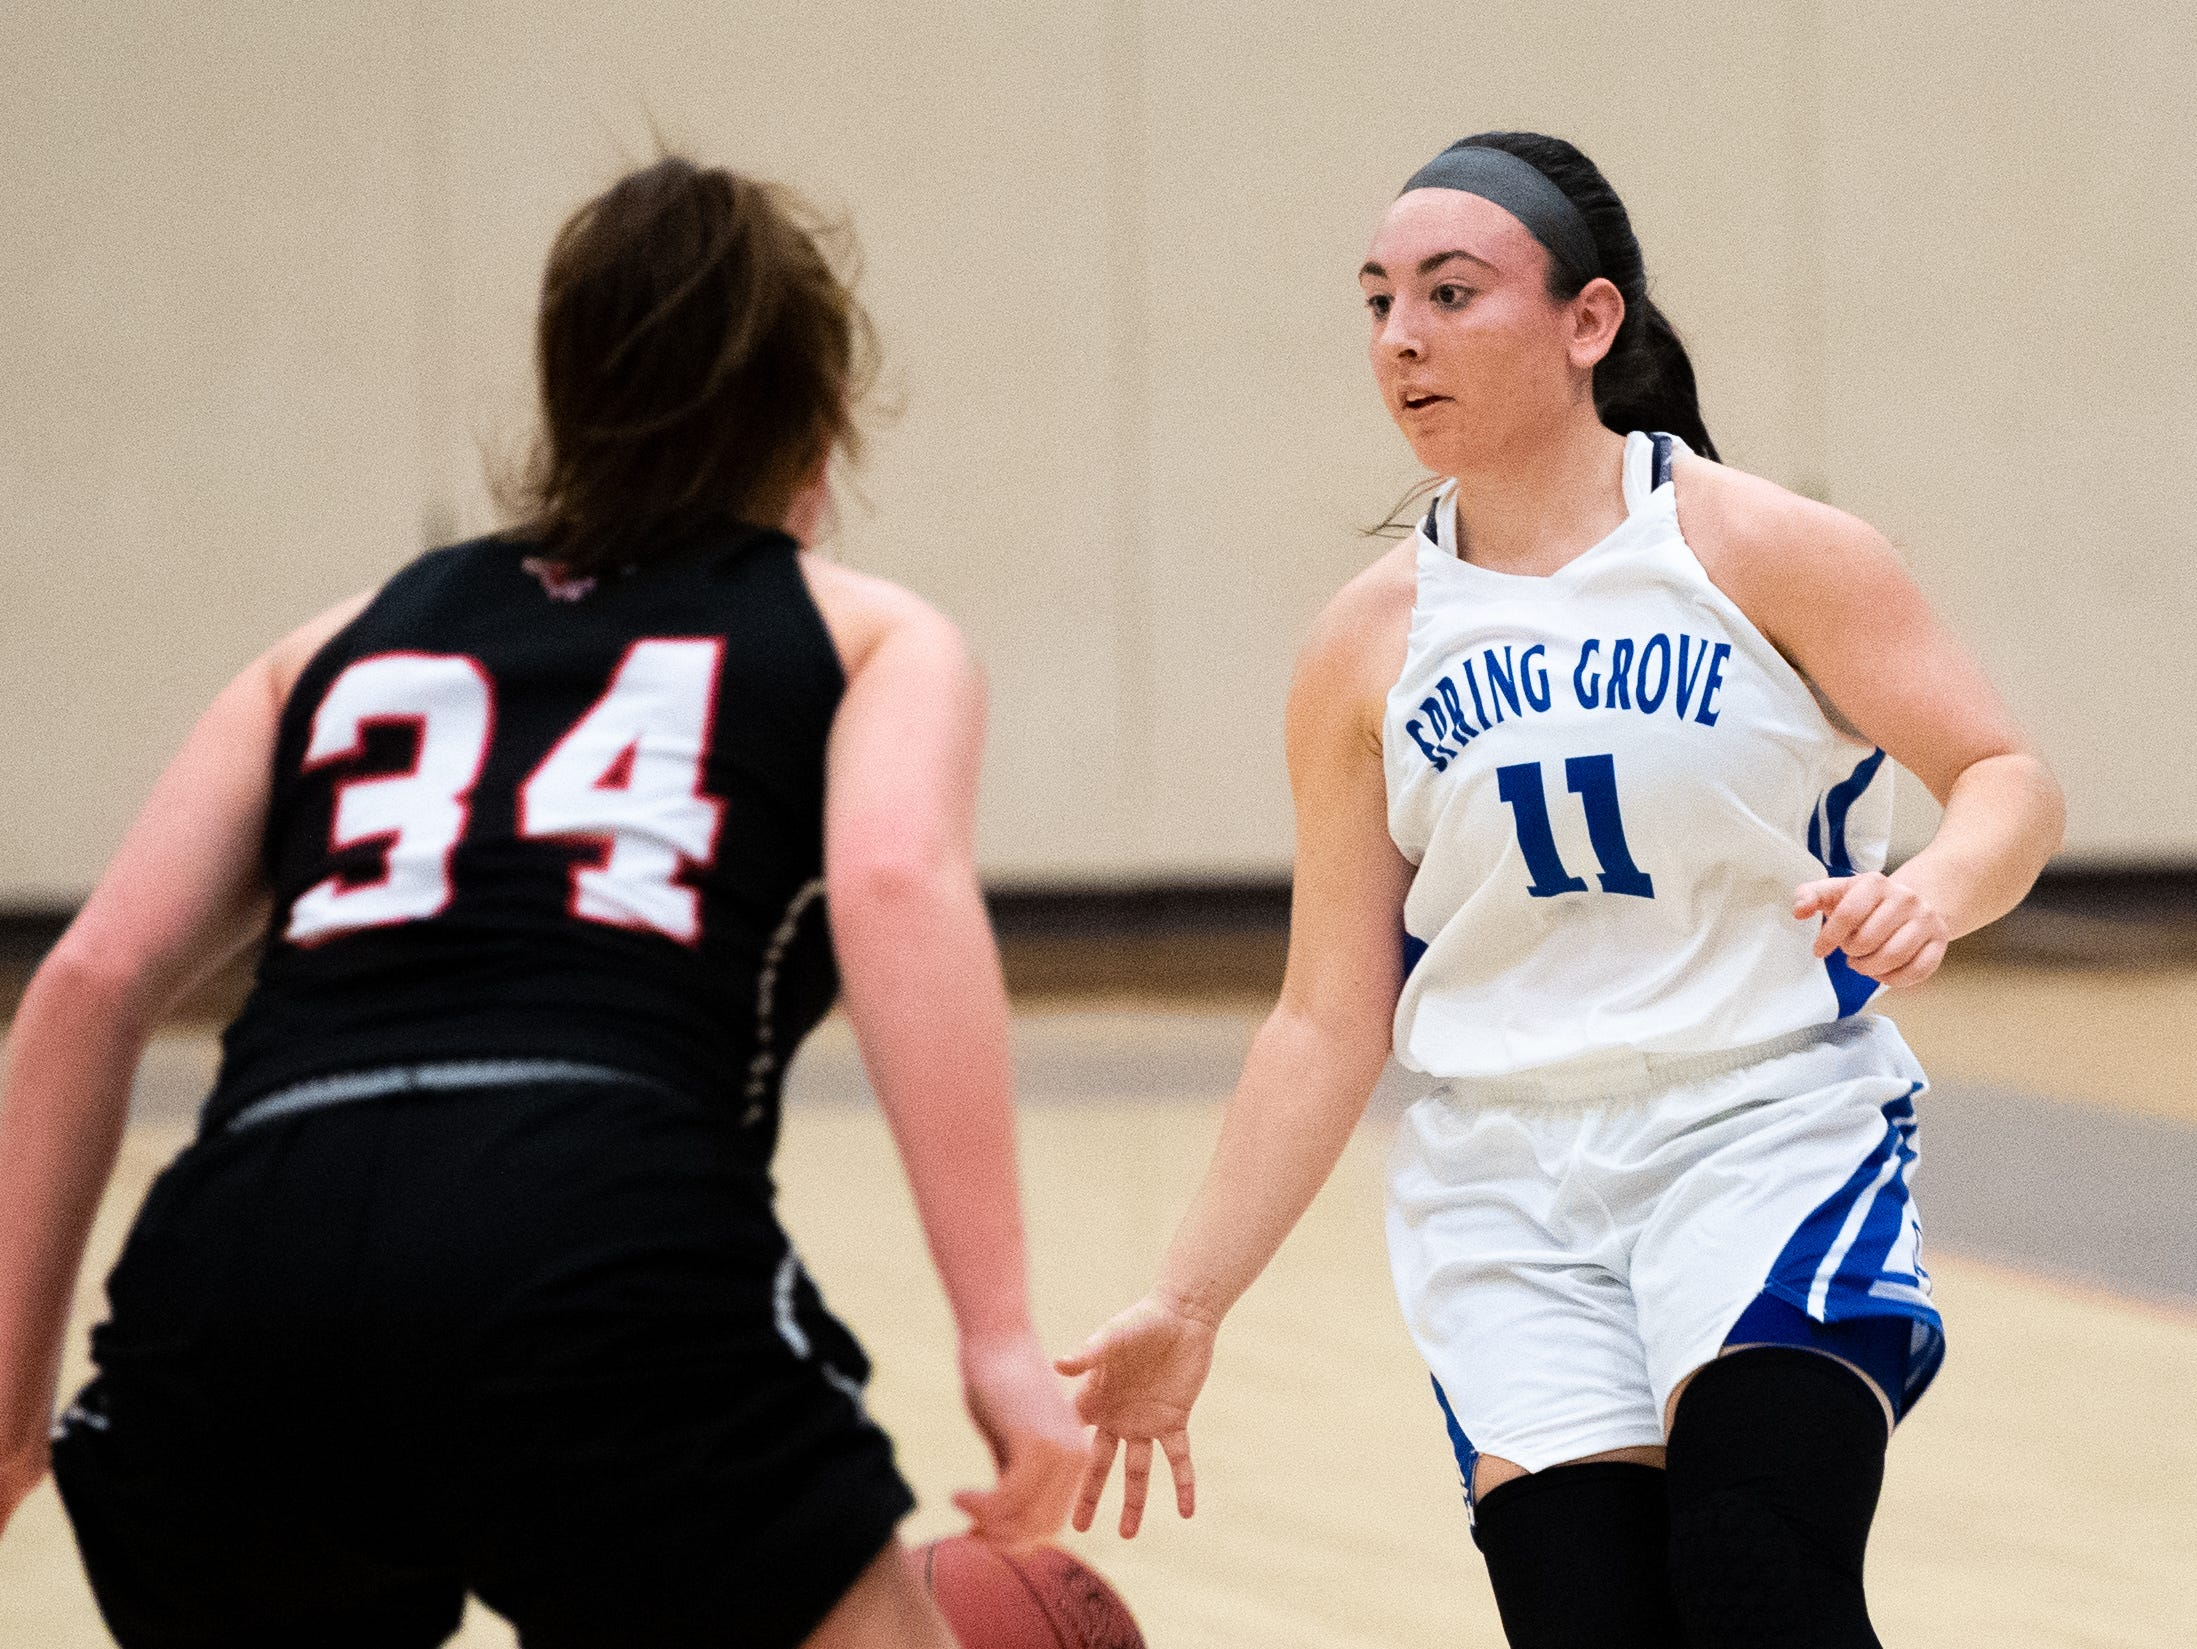 Haley Wagman (11) prepares to pass during the girls' basketball game between Spring Grove and South Western at Spring Grove Area High School, Friday, January 11, 2019. The Rockets defeated the Mustangs 51 to 38.